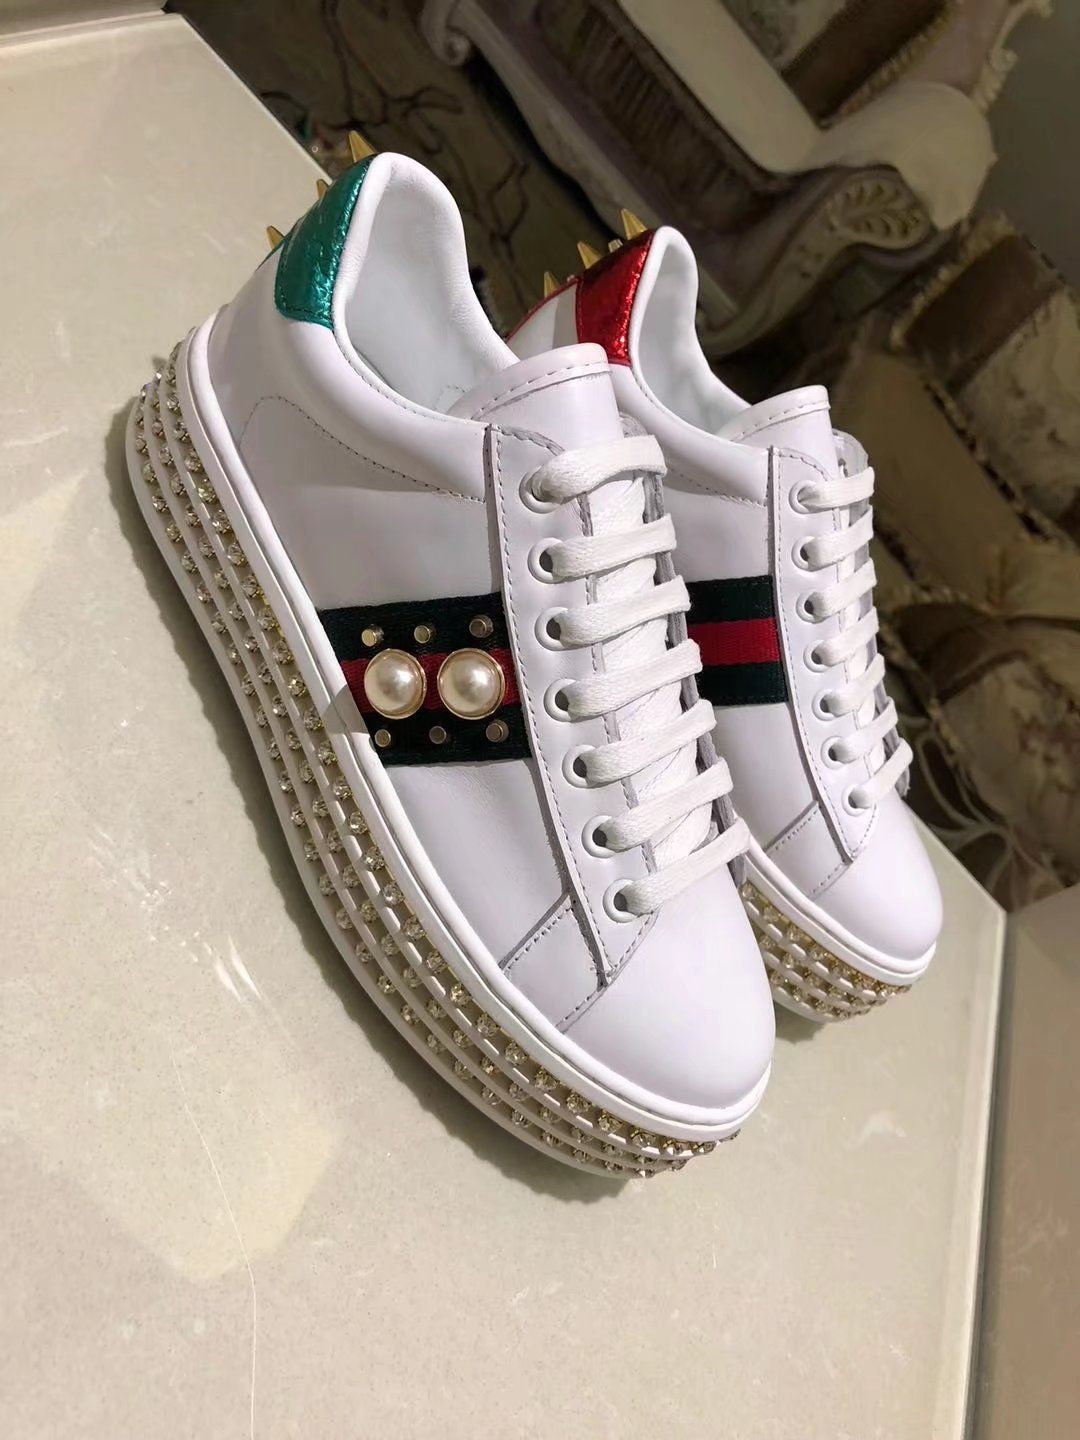 d68194c6ff7 Replica GUCCI Ace sneaker with pearls White Leather Women Size 35-40 ID  ID